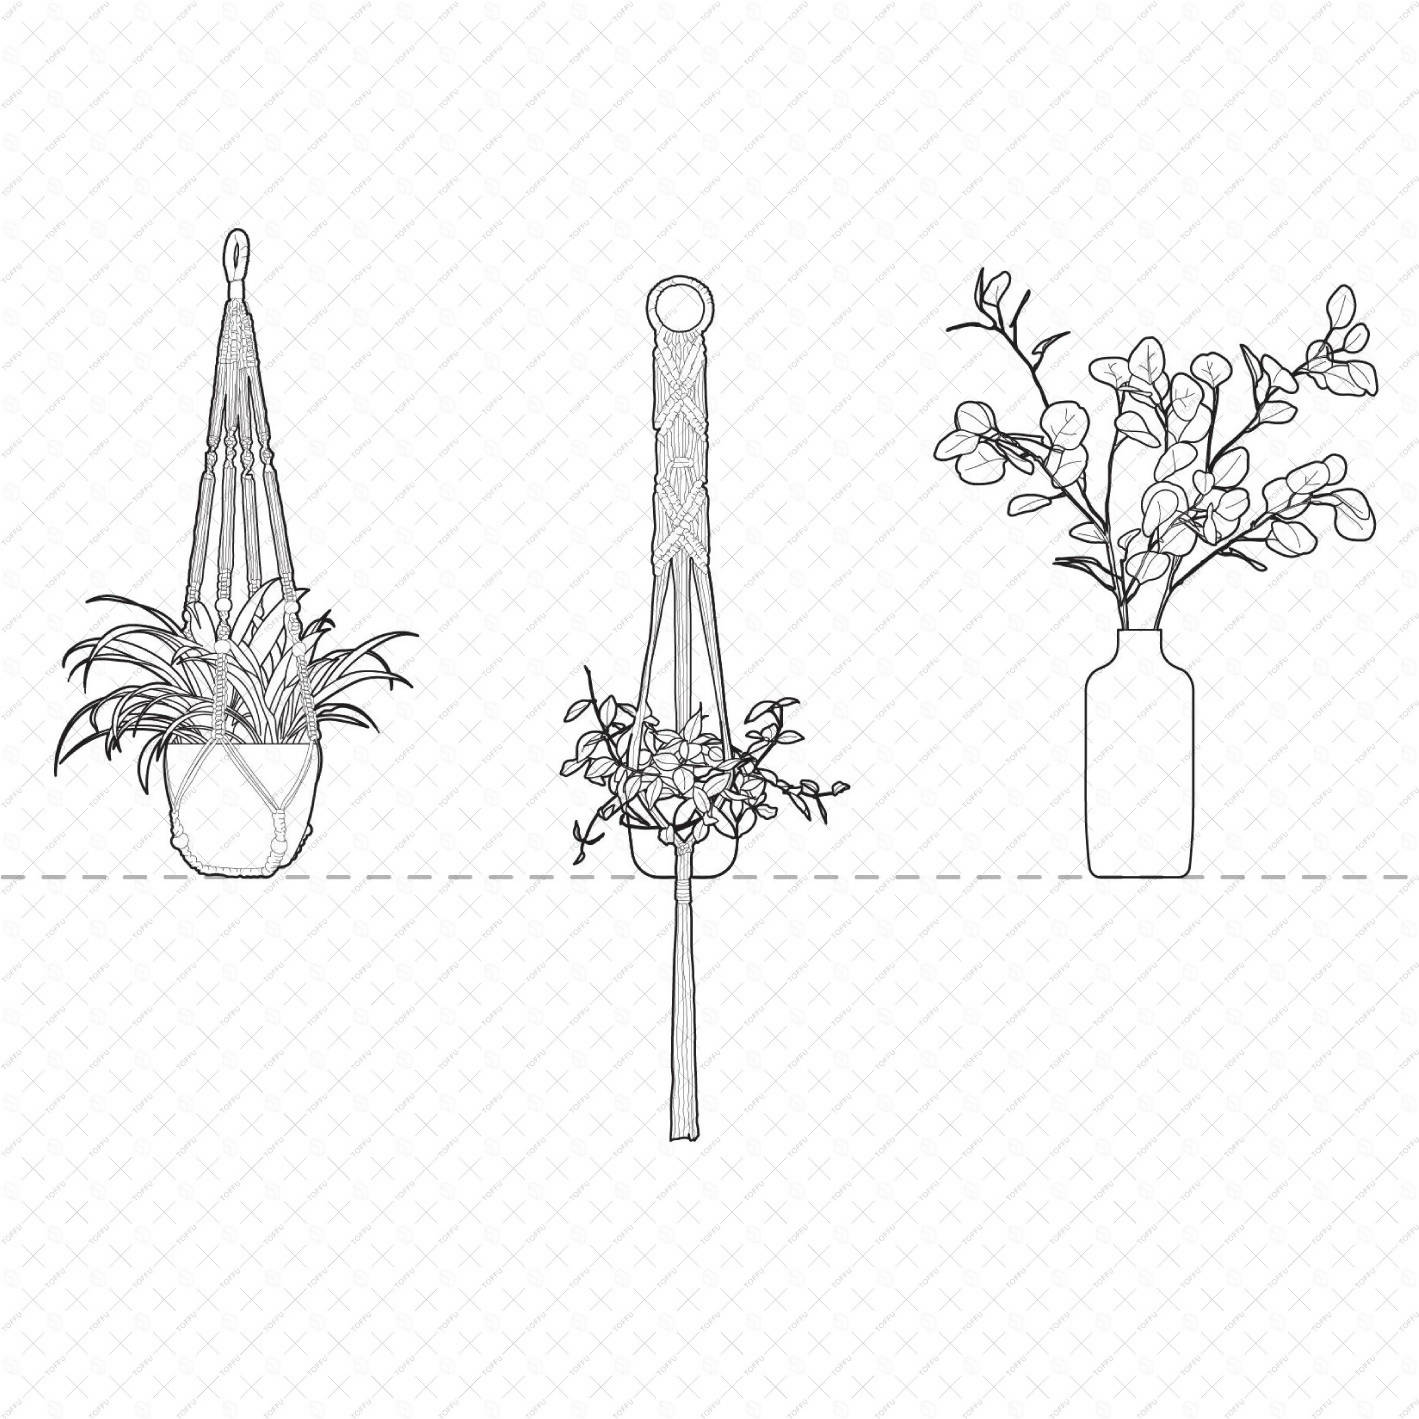 Cad Interior Potted Plants DWG | Toffu Co